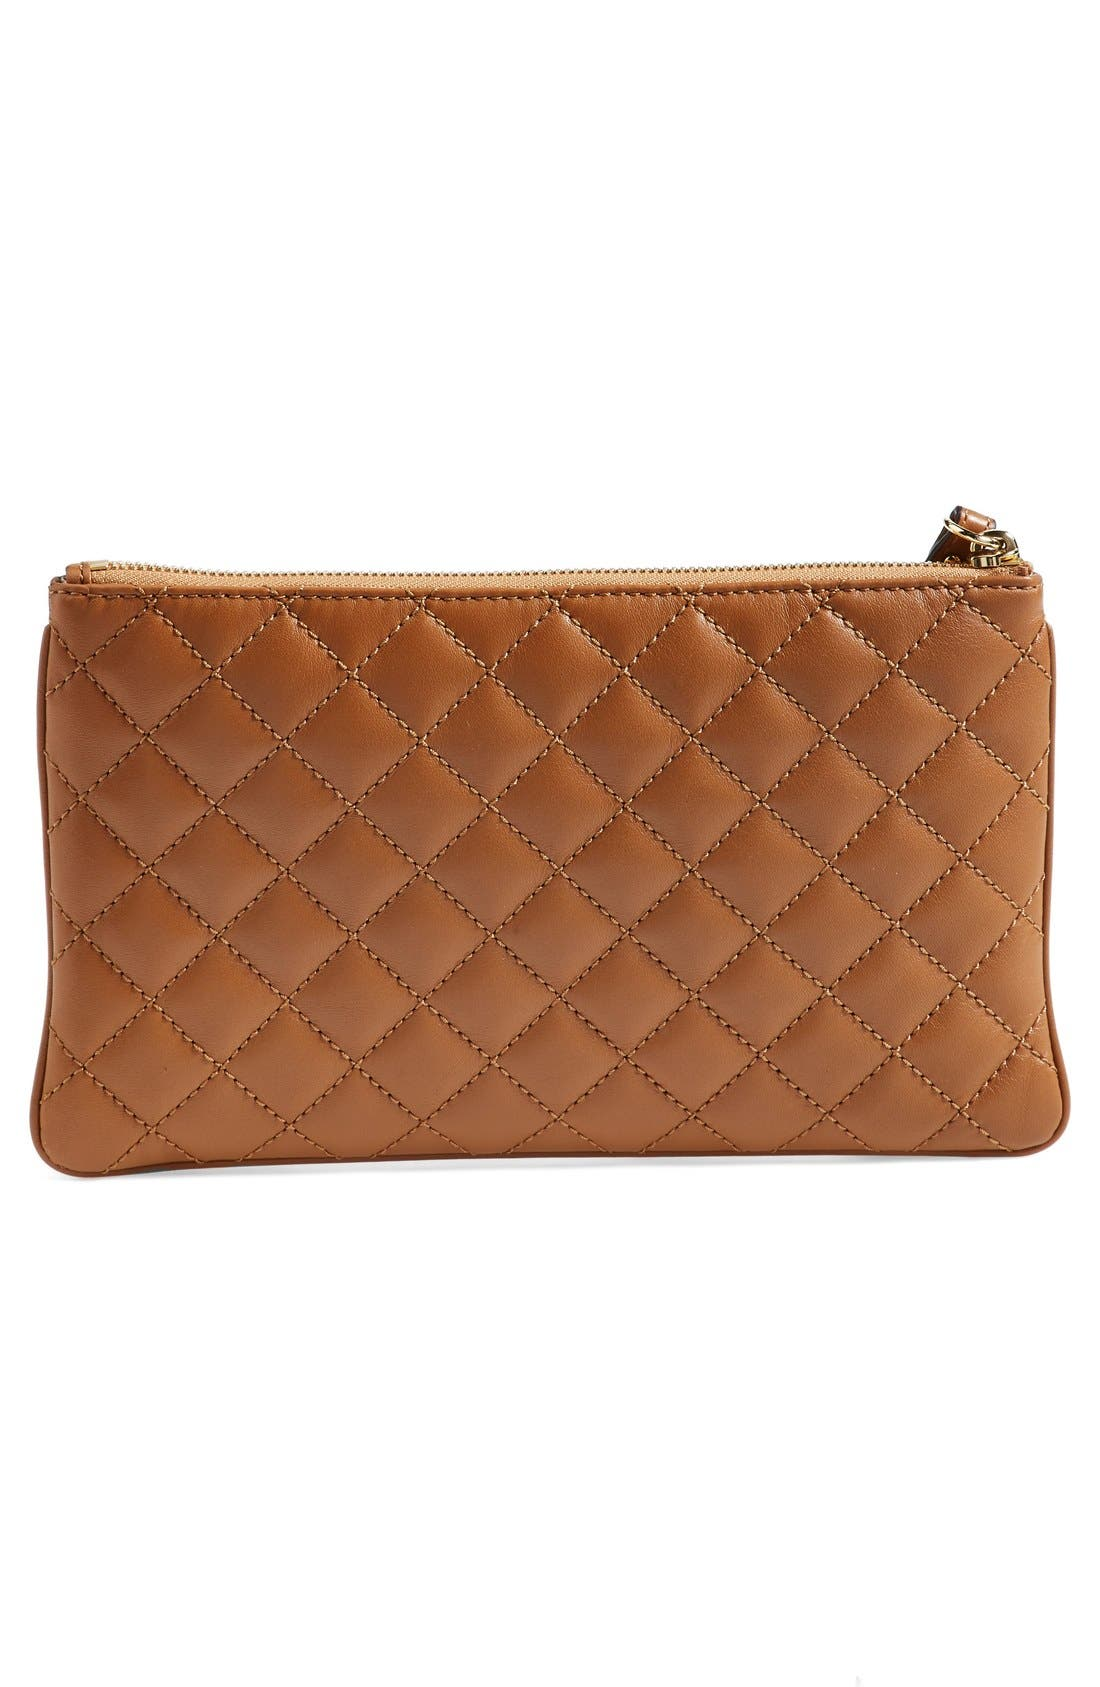 Alternate Image 3  - MICHAEL Michael Kors 'Selma' Quilted Leather Zip Clutch